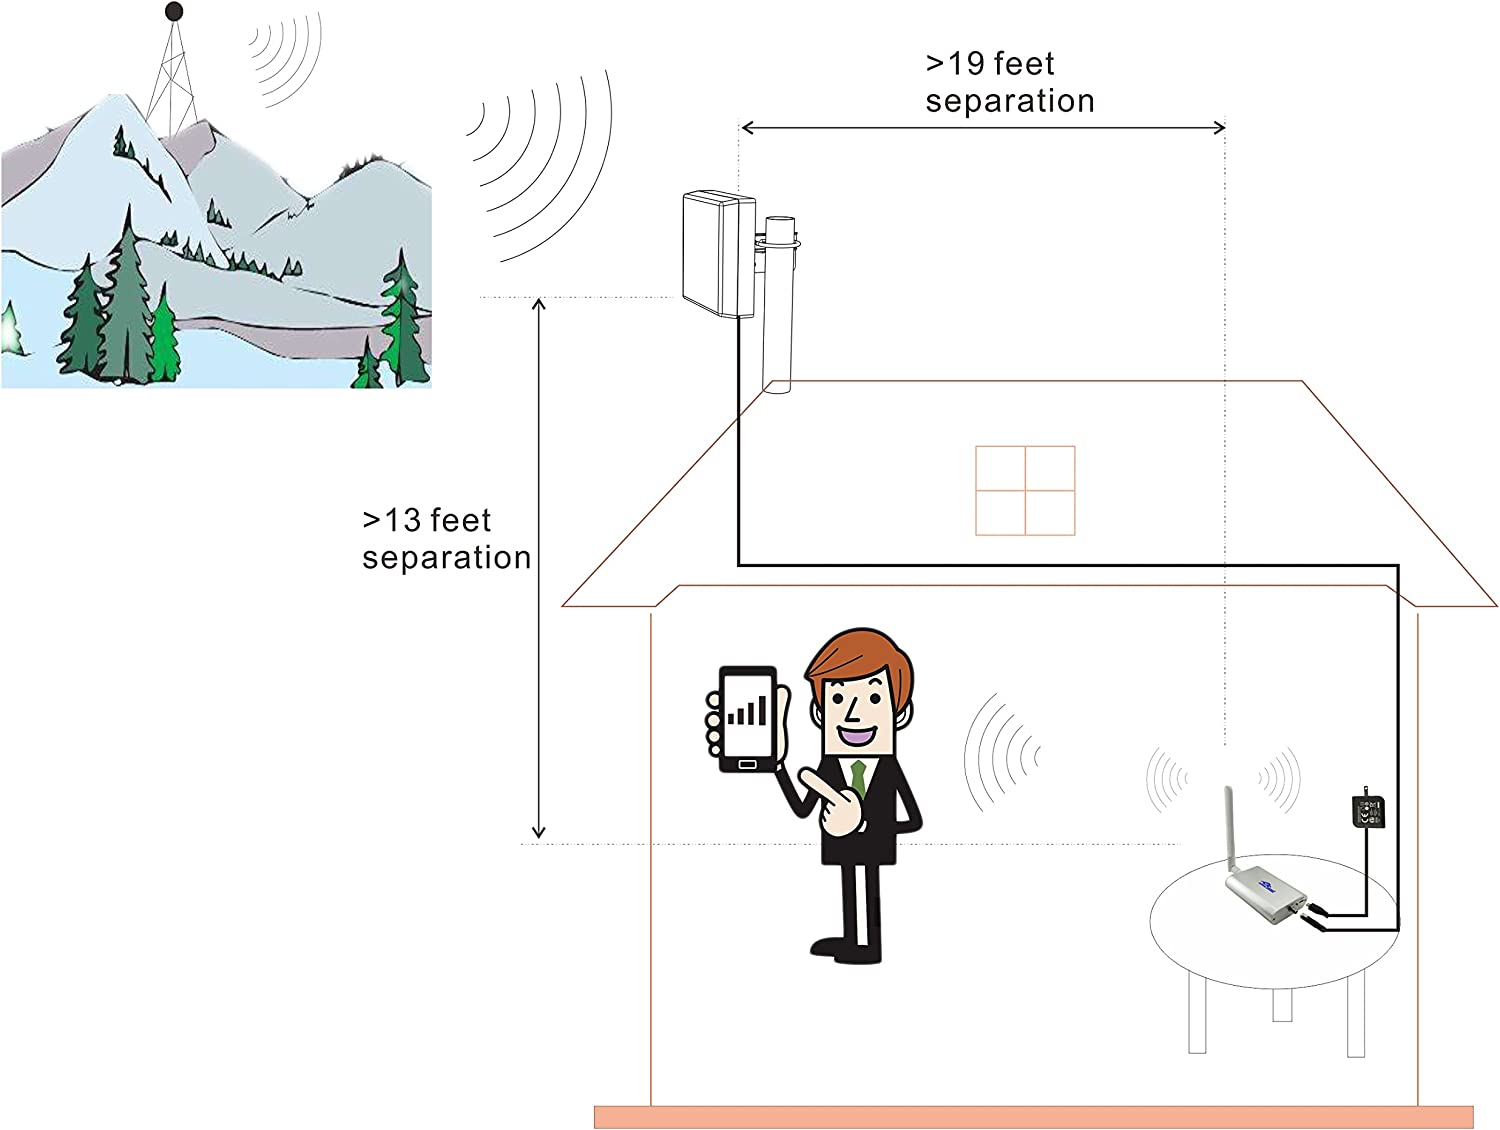 4G LTE AT/&T T-Mobile 65dB 700MHz Cell Phone Signal Booster for Home and Office Band 12//17 FDD LTE Mobile Phone Signal Amplifier Including 45 Feet RG58 Cable Repeater Full Kit